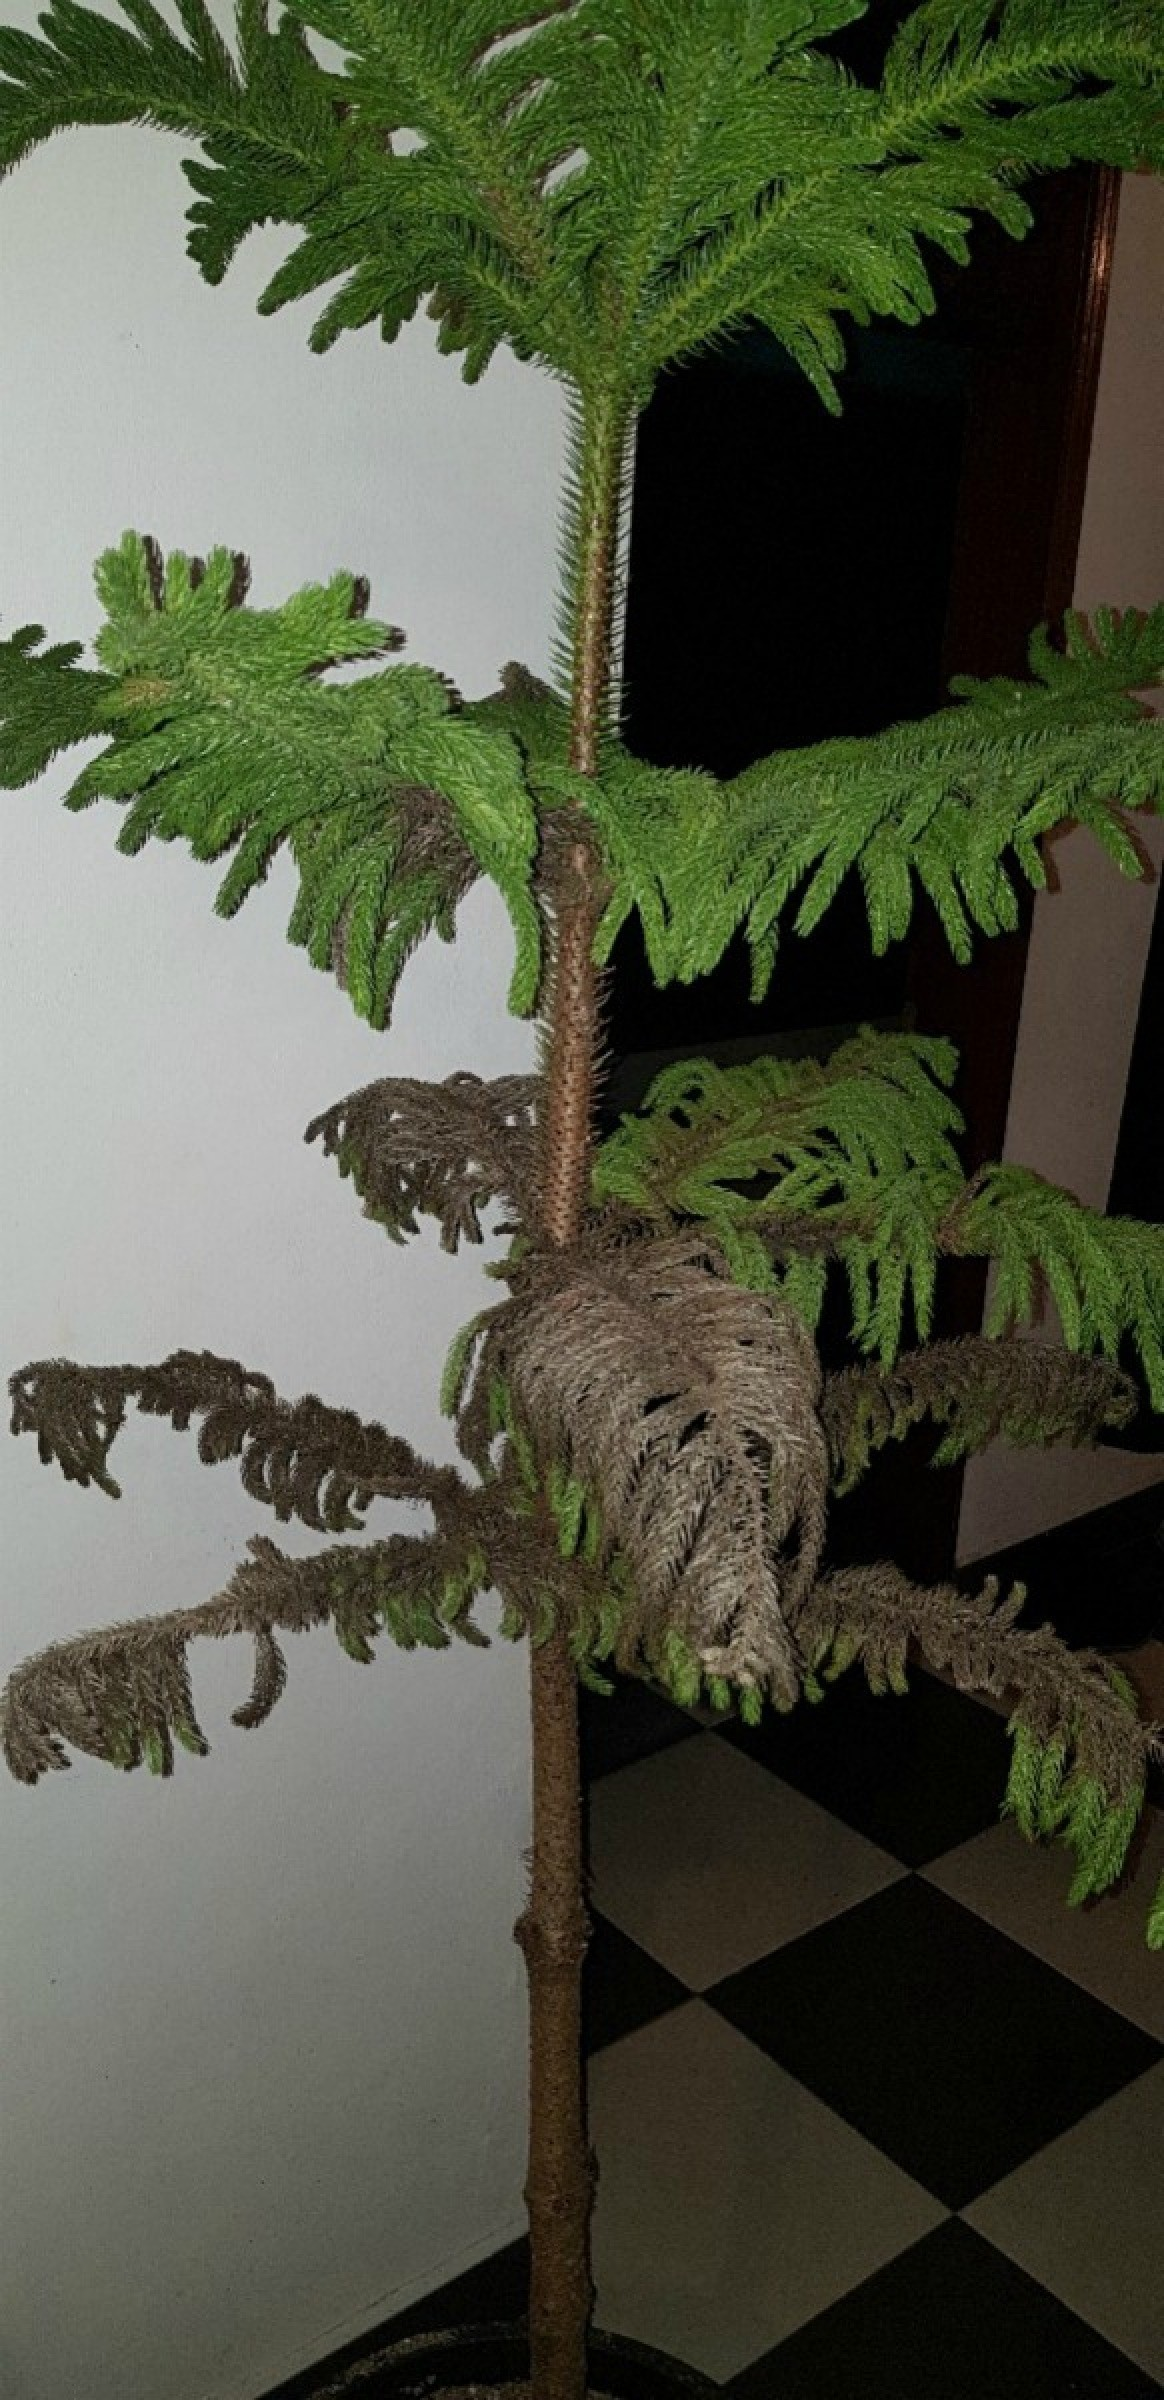 Norfolk Pine Needles Turning Brown | ThriftyFun on easter lily plant care, tulip plant care, asparagus fern plant care, marble queen plant care, maidenhair fern plant care, dragon tree plant care, confederate rose plant care, flowers plant care, areca palm plant care, chinese evergreen plant care, mango plant care, morning glory plant care, weeping fig plant care, boston fern plant care, jasmine plant care, trumpet vine plant care, boxwood plant care, african violet plant care, creeping fig plant care, paradise palm plant care,